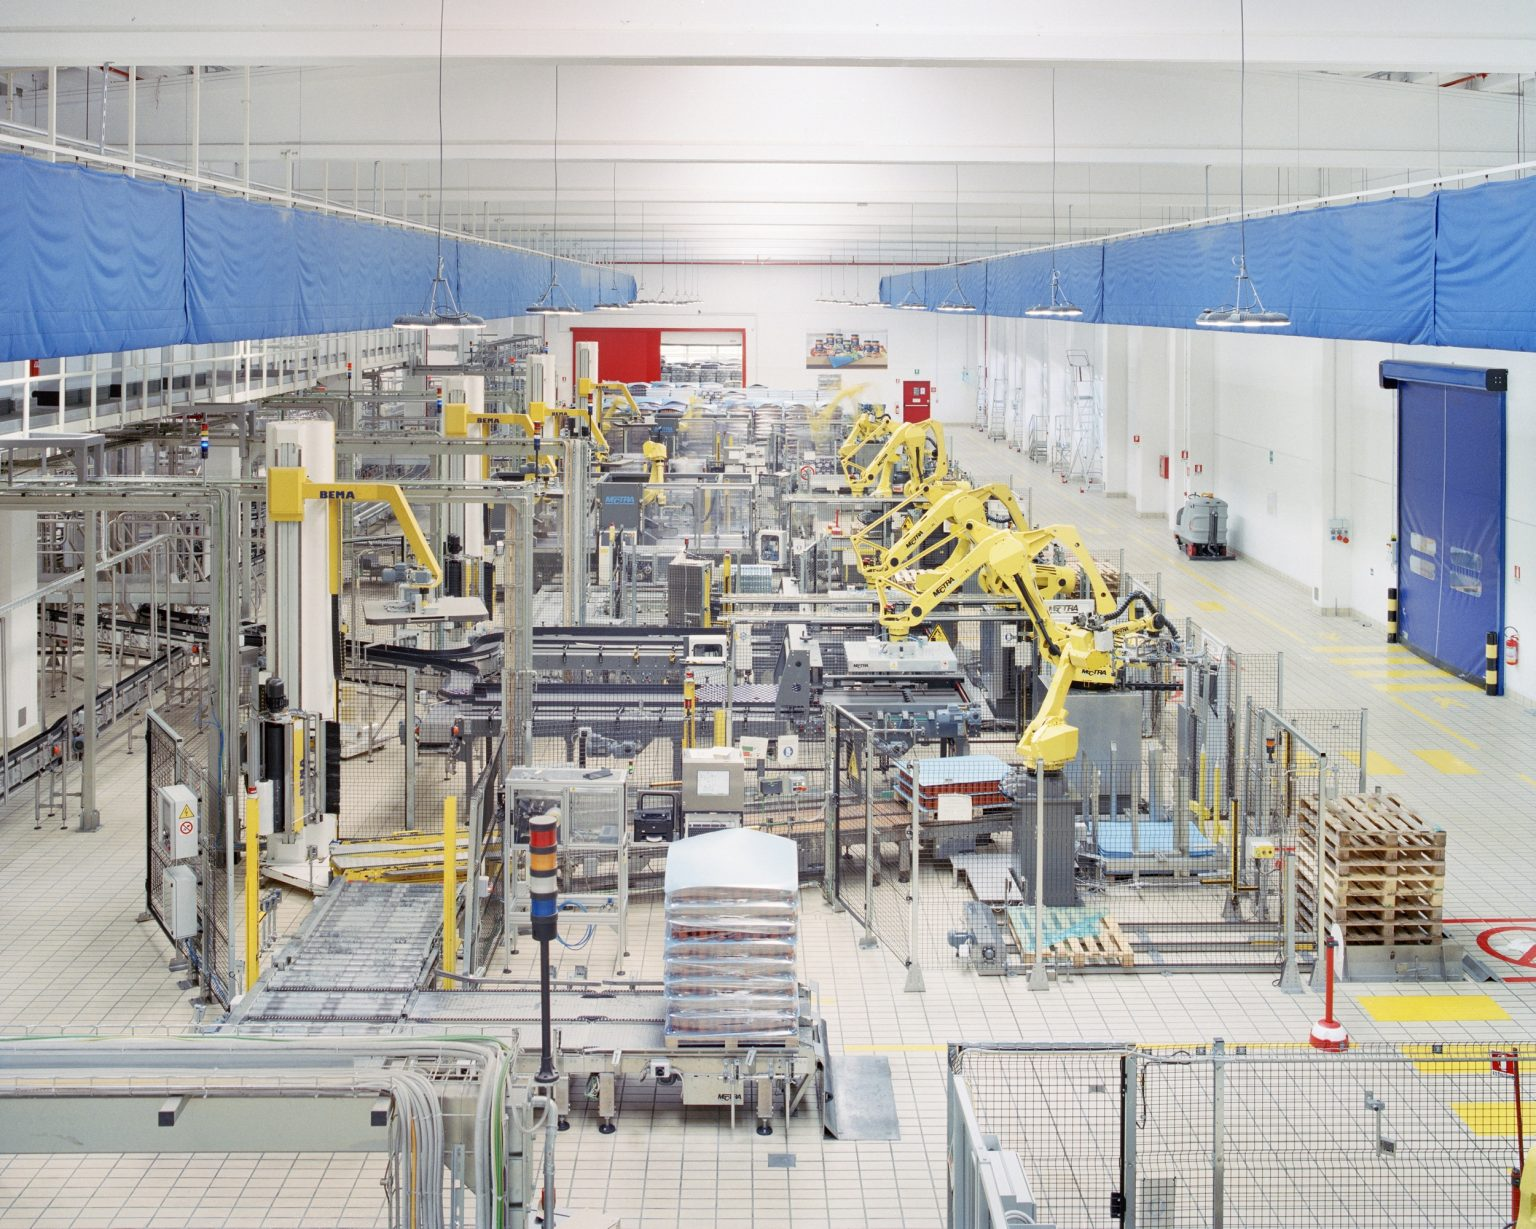 Barilla, Rubbiano's sauce plant, 2017. The largest plant in Europe specializing in pasta ready-made sauces in the Parma Food Valley. About 120 employees, working with innovative, robotically engineered and digitally integrated systems and technologies. >< Barilla, Rubbiano, 2017. La più grande fabbrica in Europa specializzata in sughi pronti per pasta nella Food Valley di Parma. Circa 120 dipendenti, che lavorano con sistemi innovativi e tecnologie digitalmente integrate.